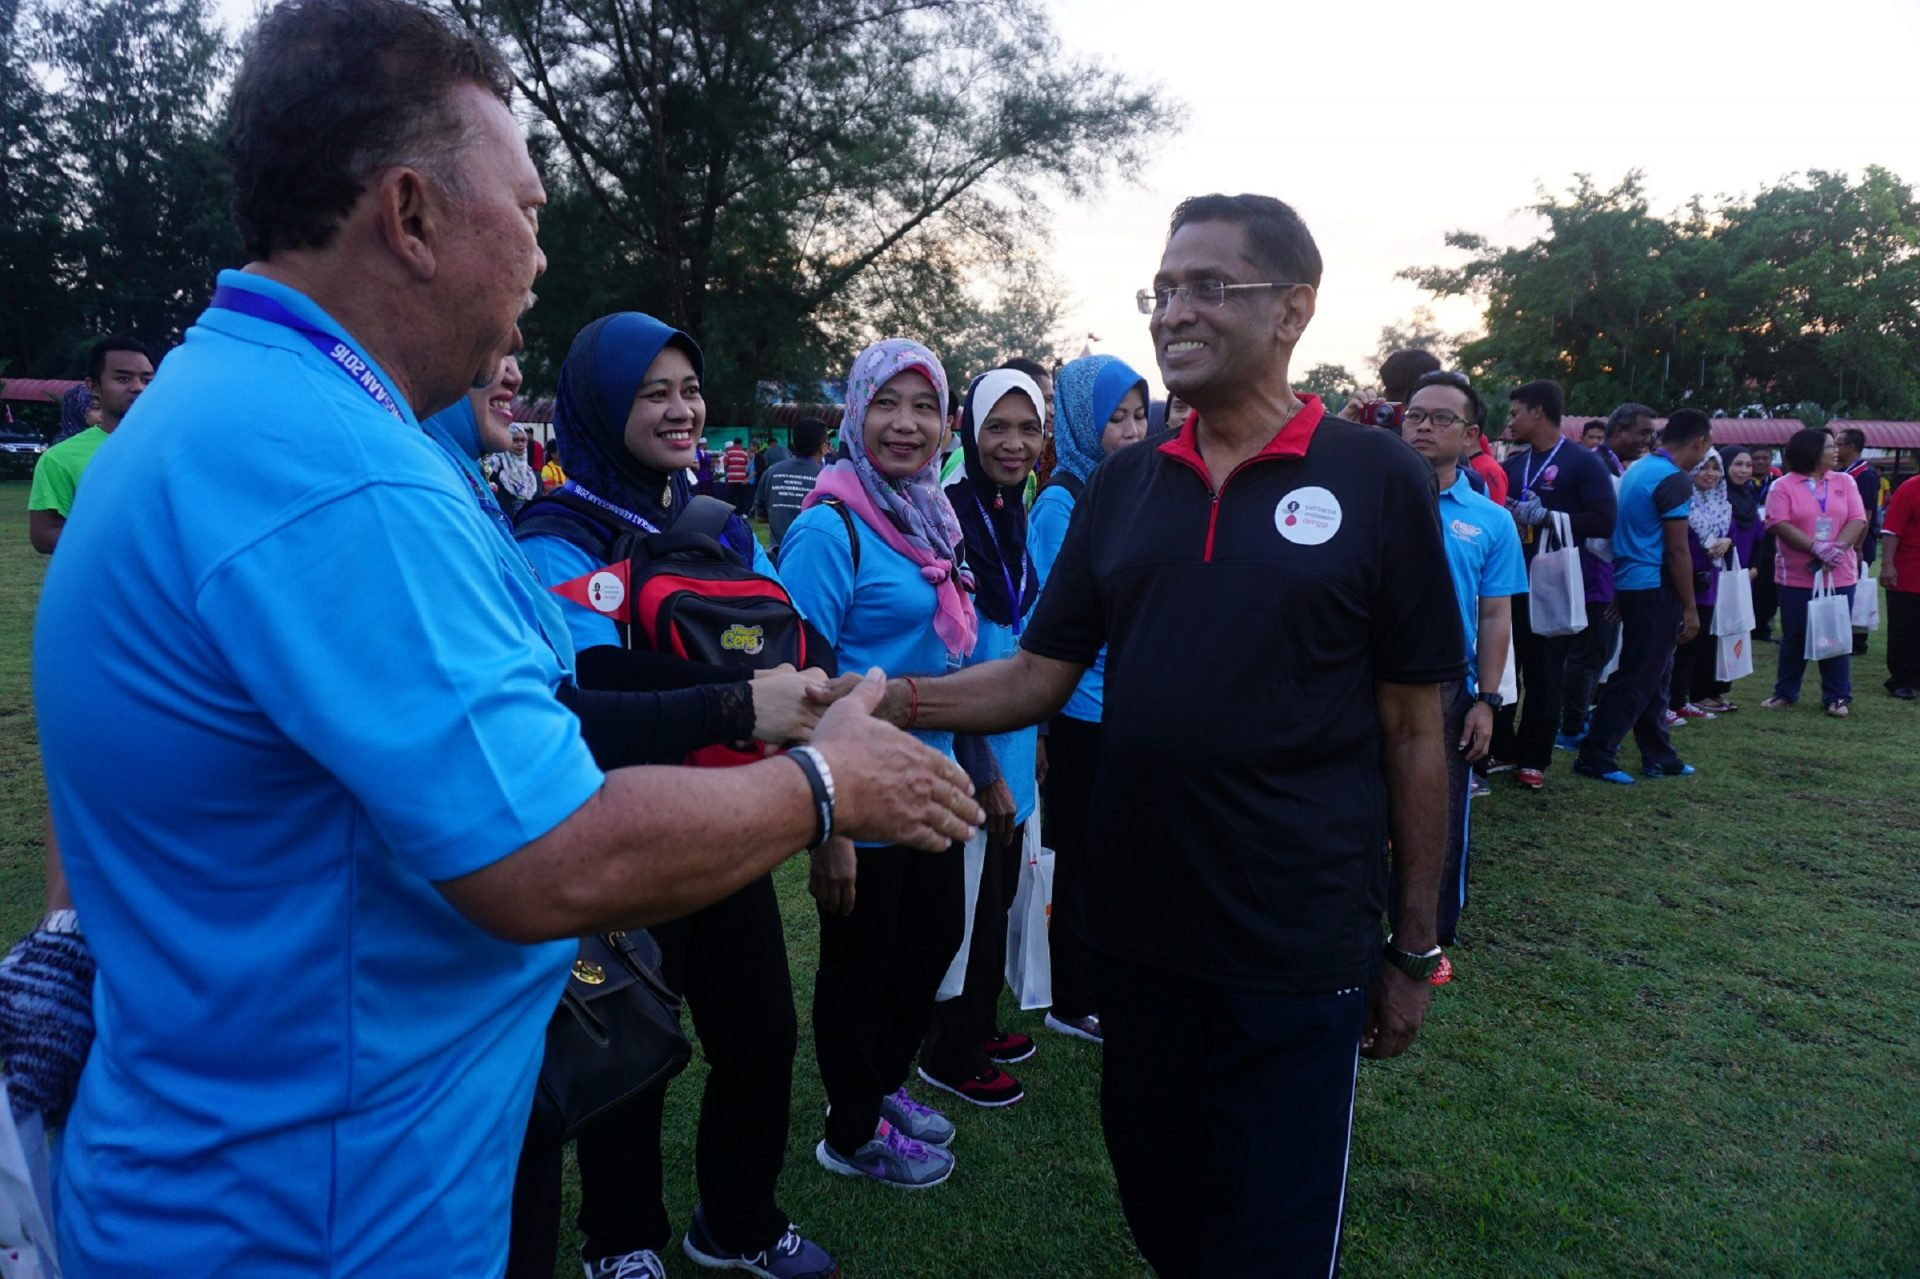 All smiles for Dengue Warriors and volunteers of Allied Against Dengue Walk & Clean campaign as they were greeted by Yang Berhormat Datuk Seri Dr S. Subramaniam, Minister of Health.